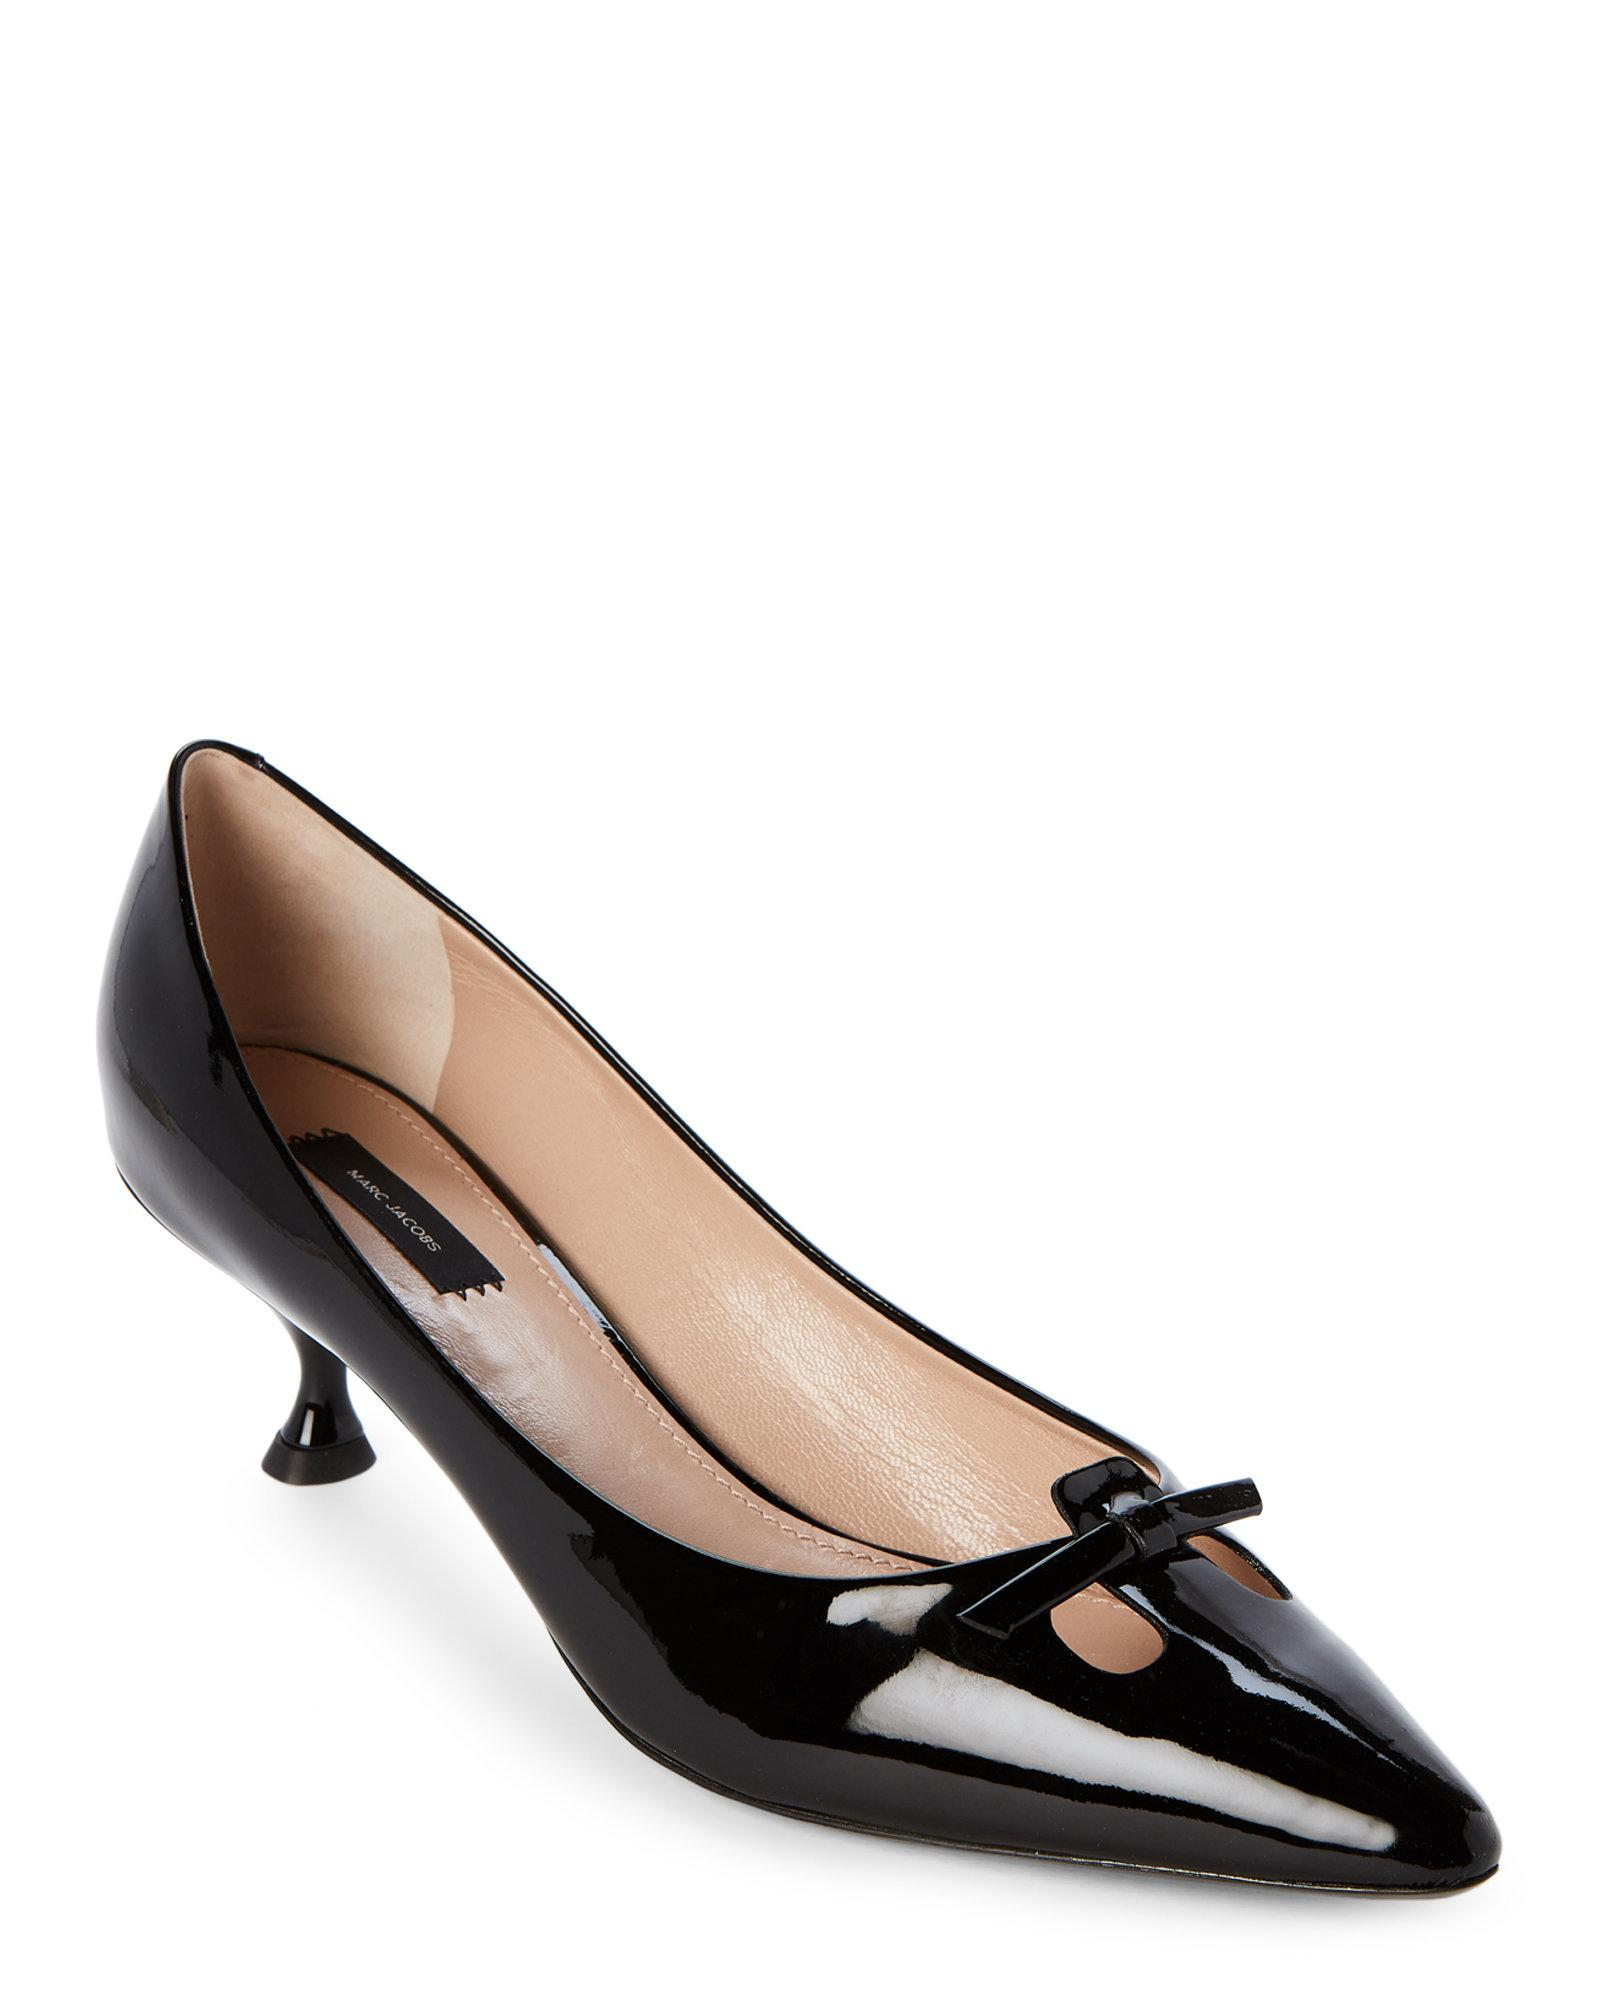 e11cebdc8f21 Lyst - Marc Jacobs Black Pointed Toe Patent Kitten Heel Pumps in Black